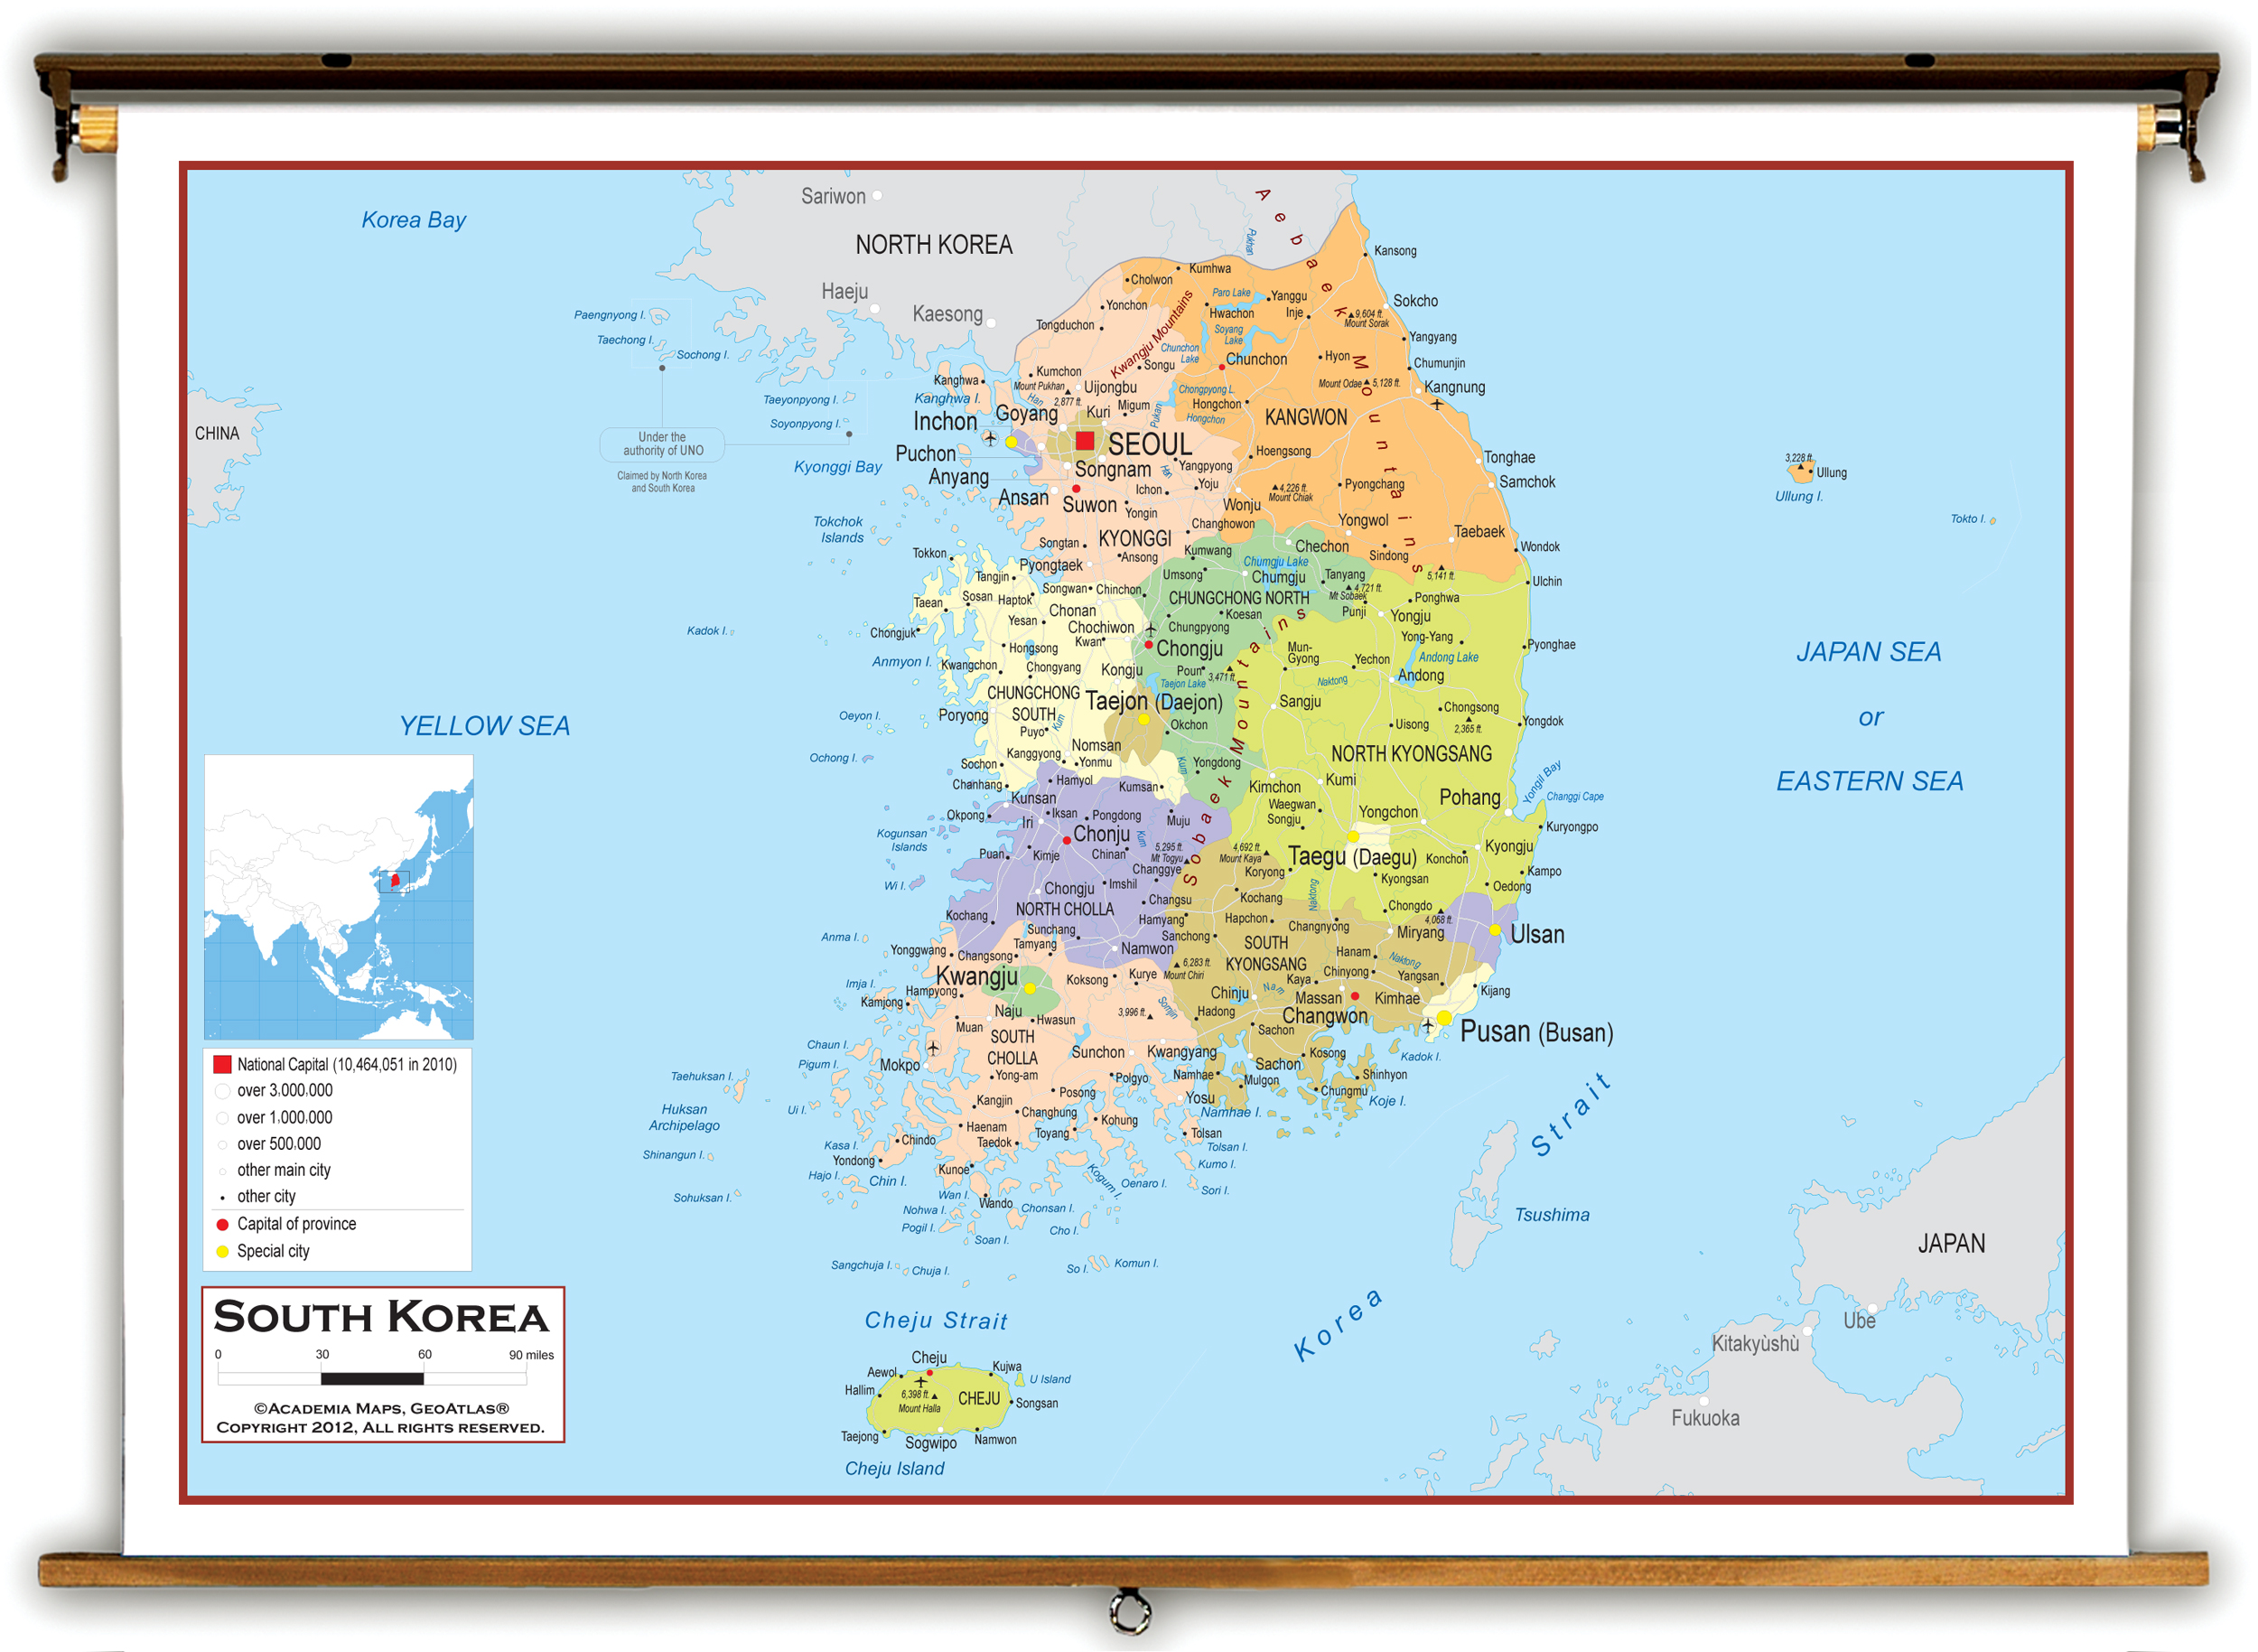 South Korea Political Educational Wall Map From Academia Maps